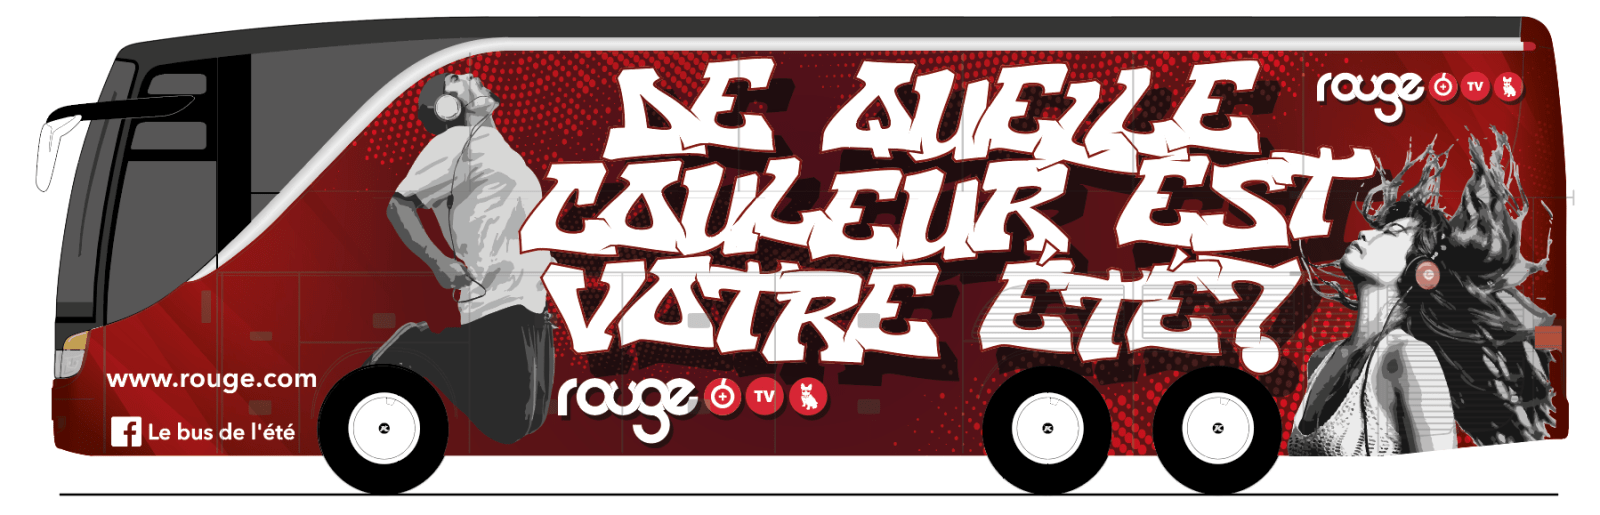 rotulacion-bus-rouge-fm